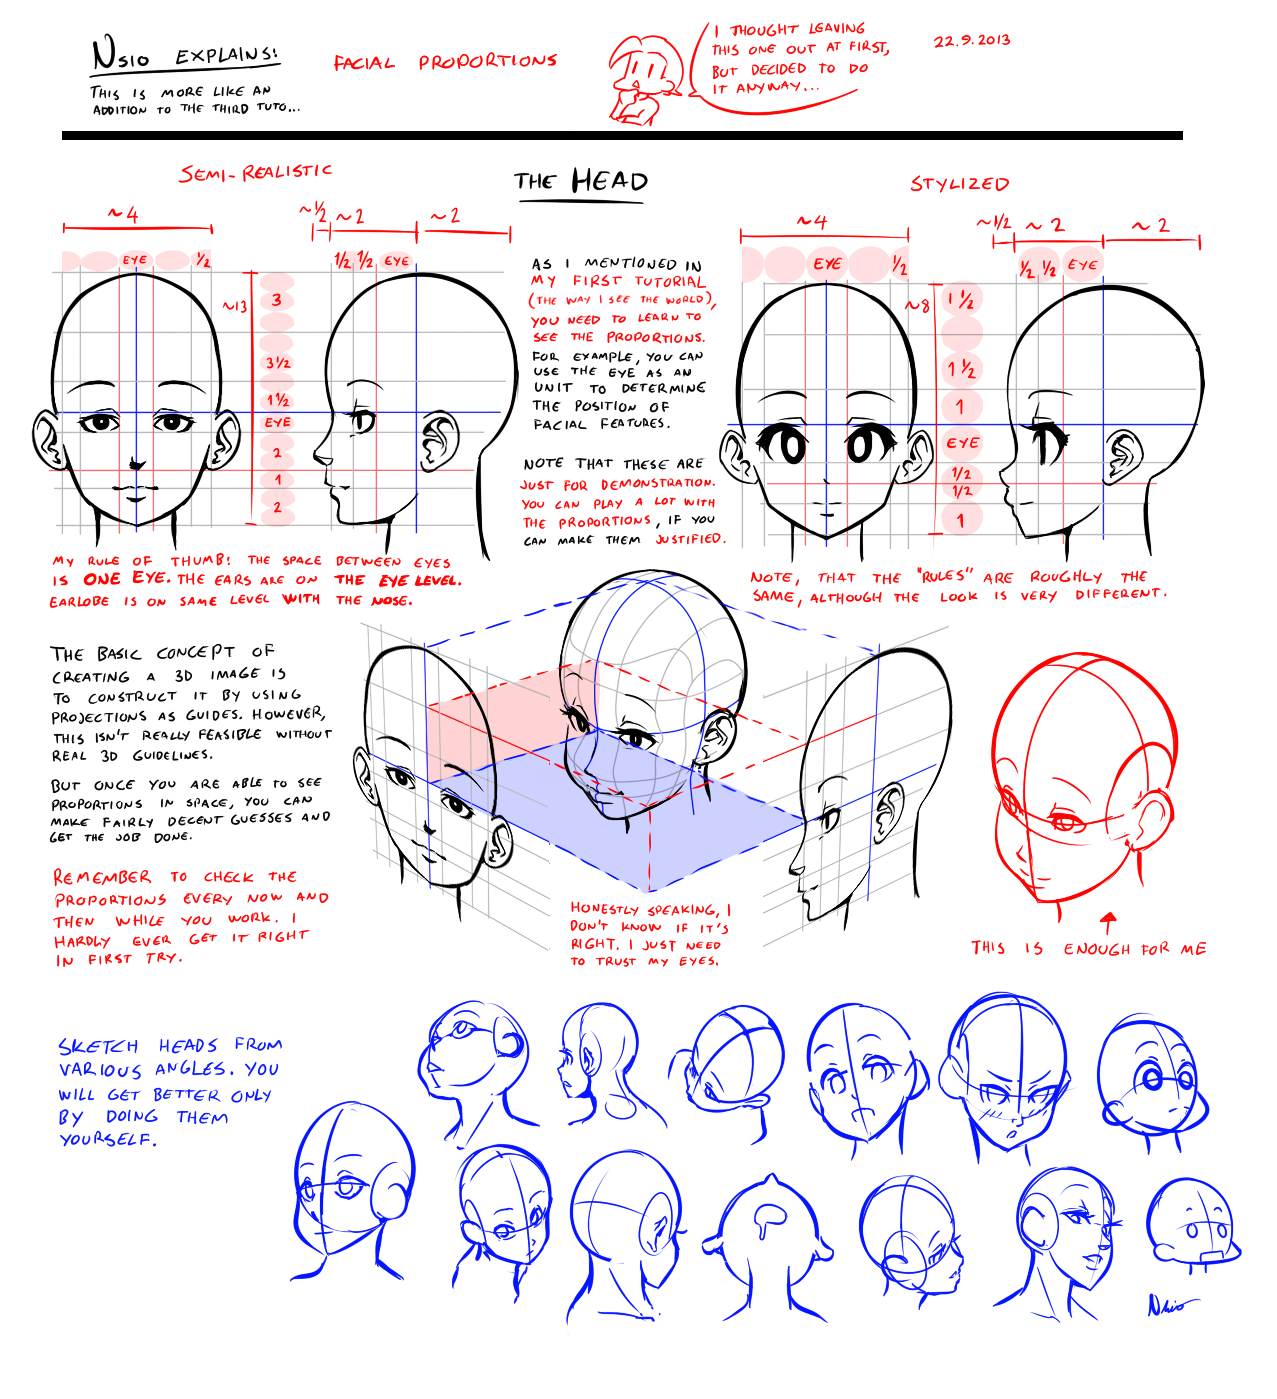 Nsio explains: Facial Proportions by Nsio on DeviantArt